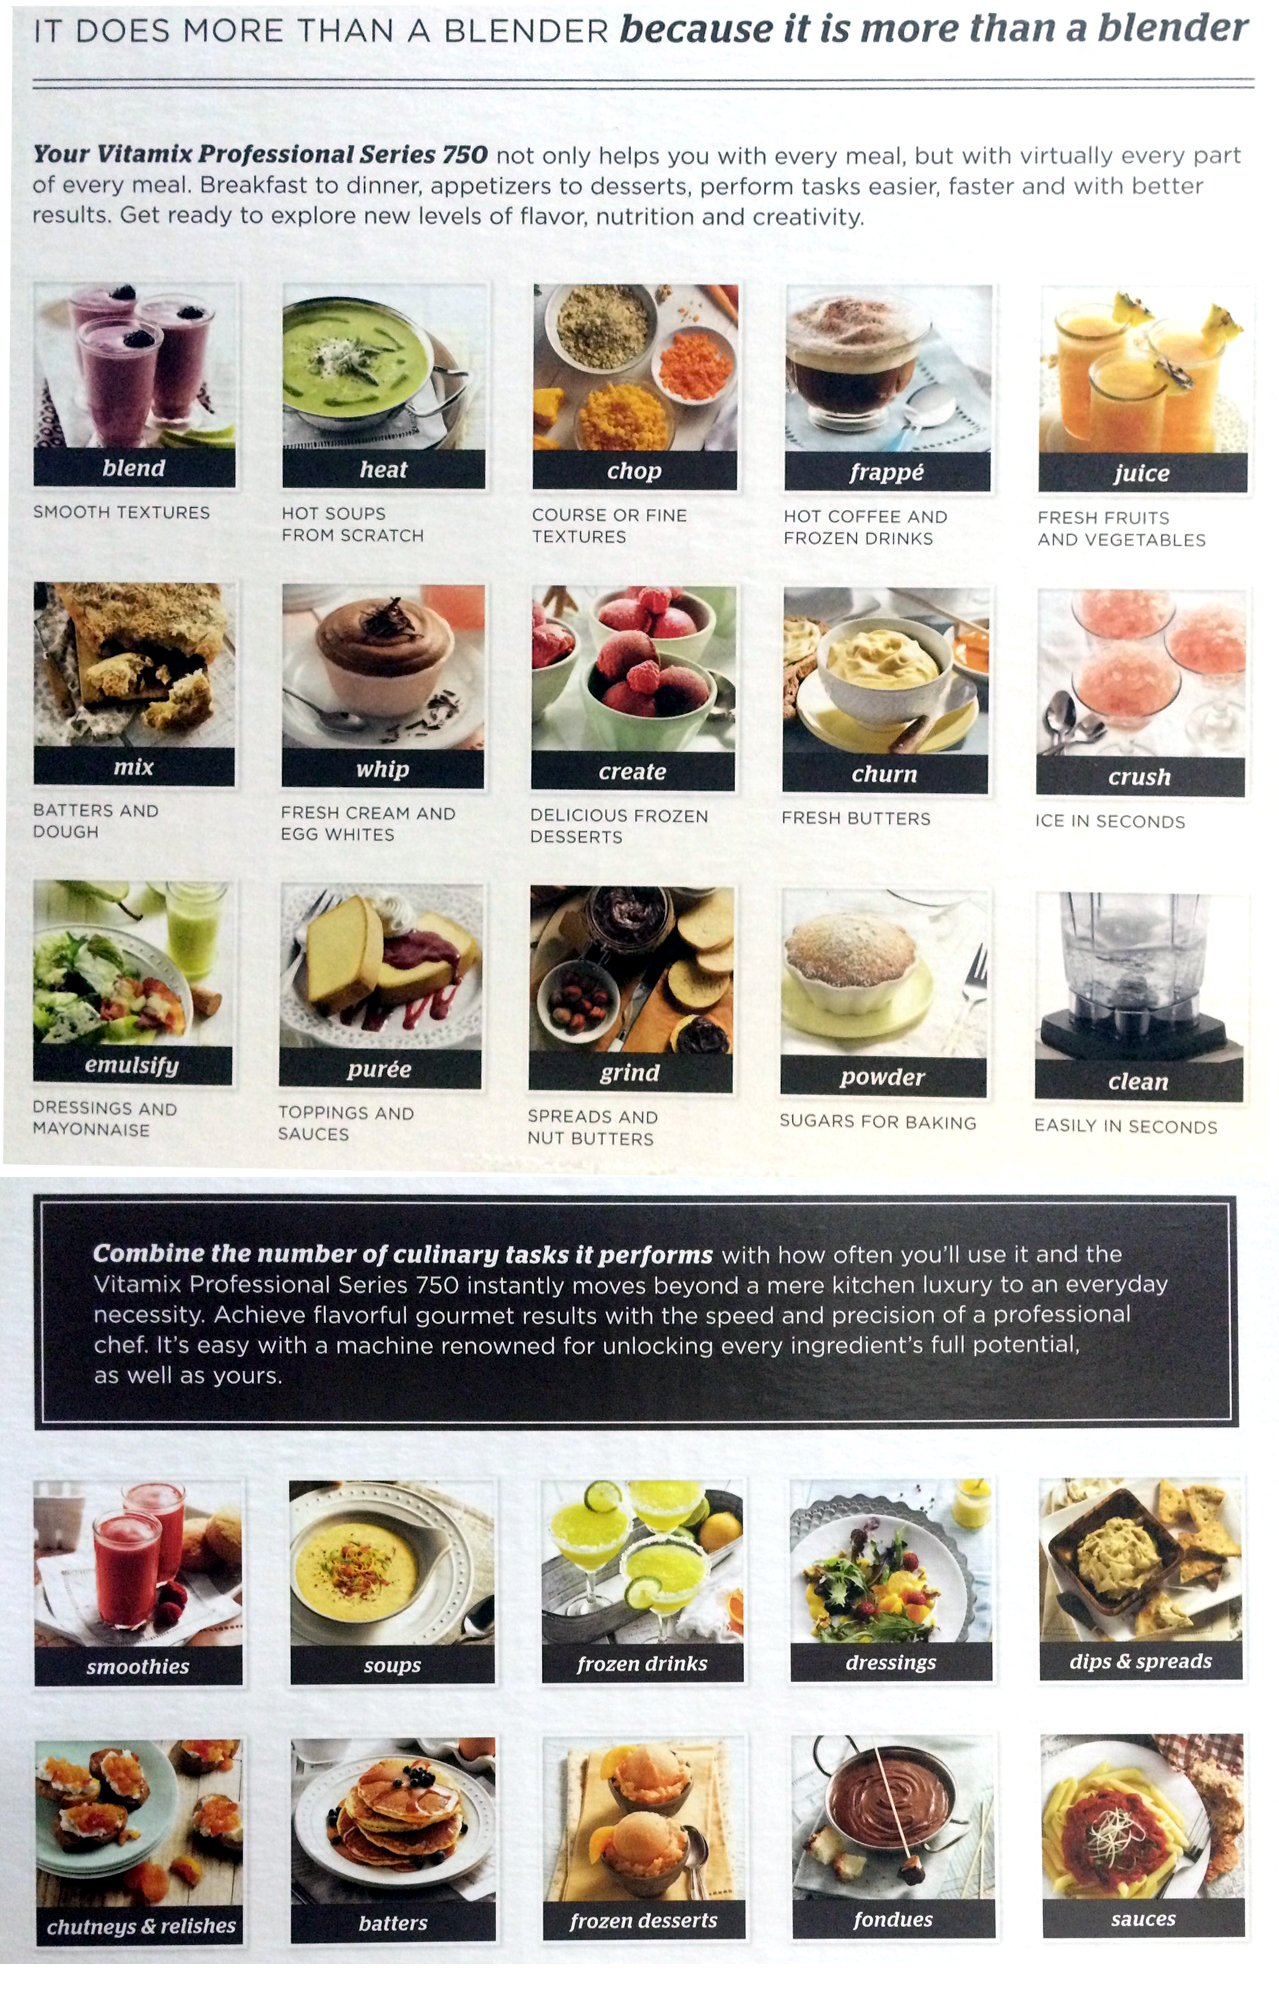 Vitamix Professional Series 750 Blender (1944) Bundle Includes: 10-Day Green Smoothie Cleanse: Lose Up to 15 Pounds in 10 Days! Paperback Book and Two Accelerator/Tamper Tools (Brushed Stainless Finish)